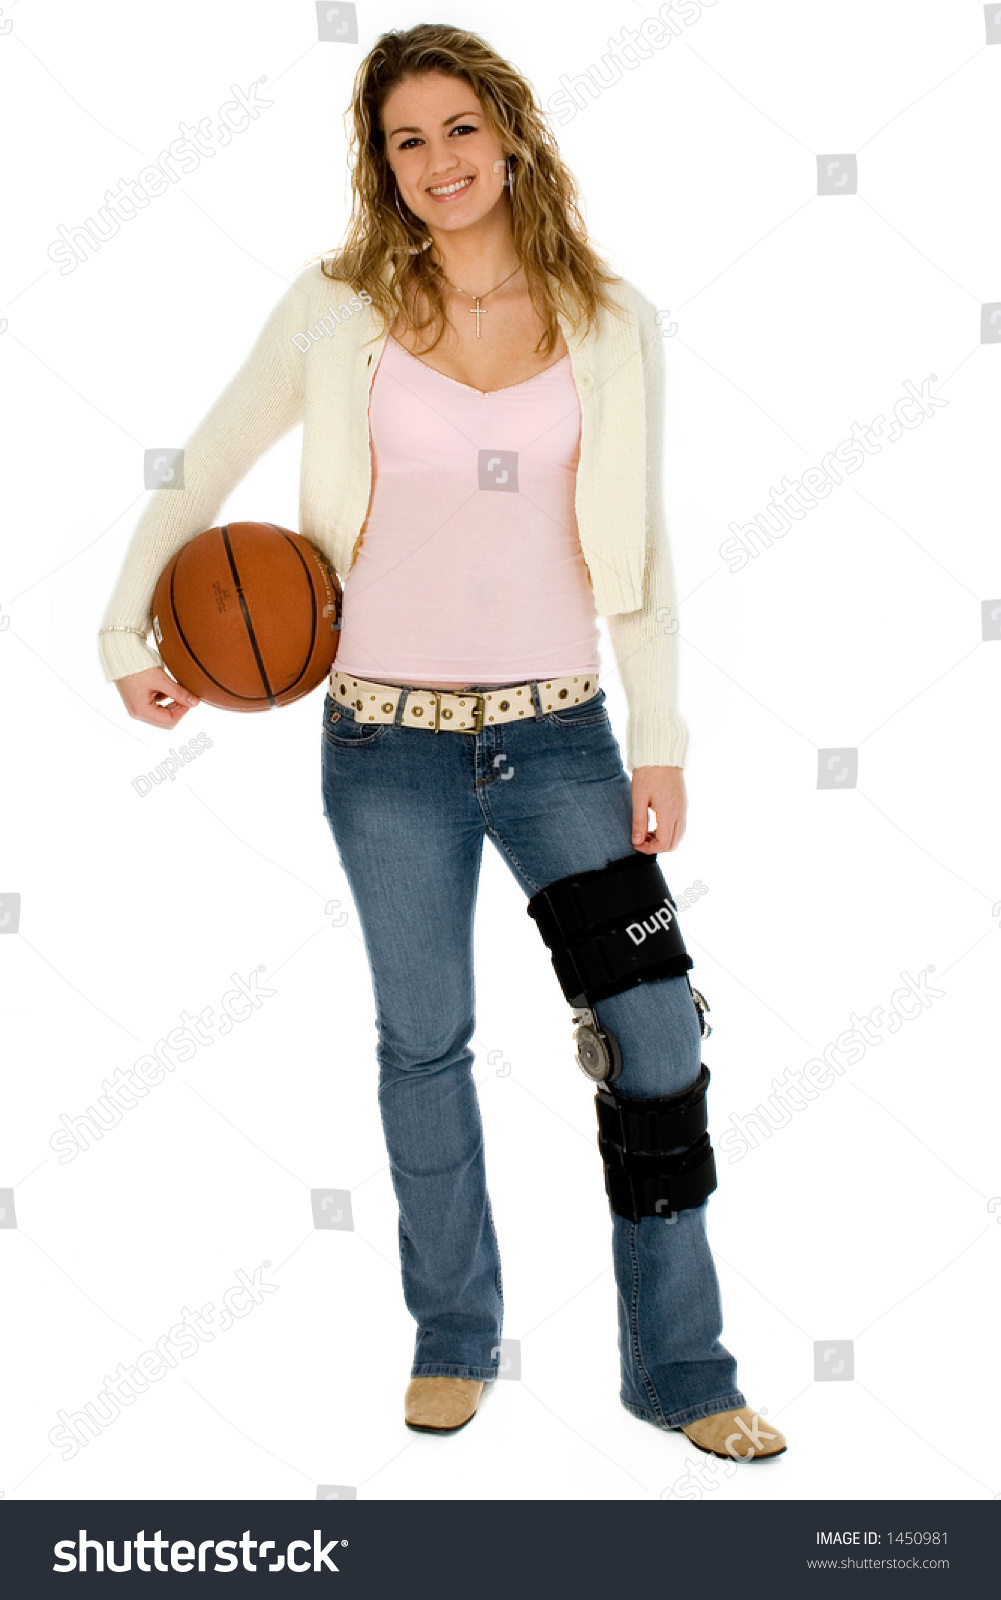 Casual teen girl with basket ball, wearing leg brace. Full body over white  with